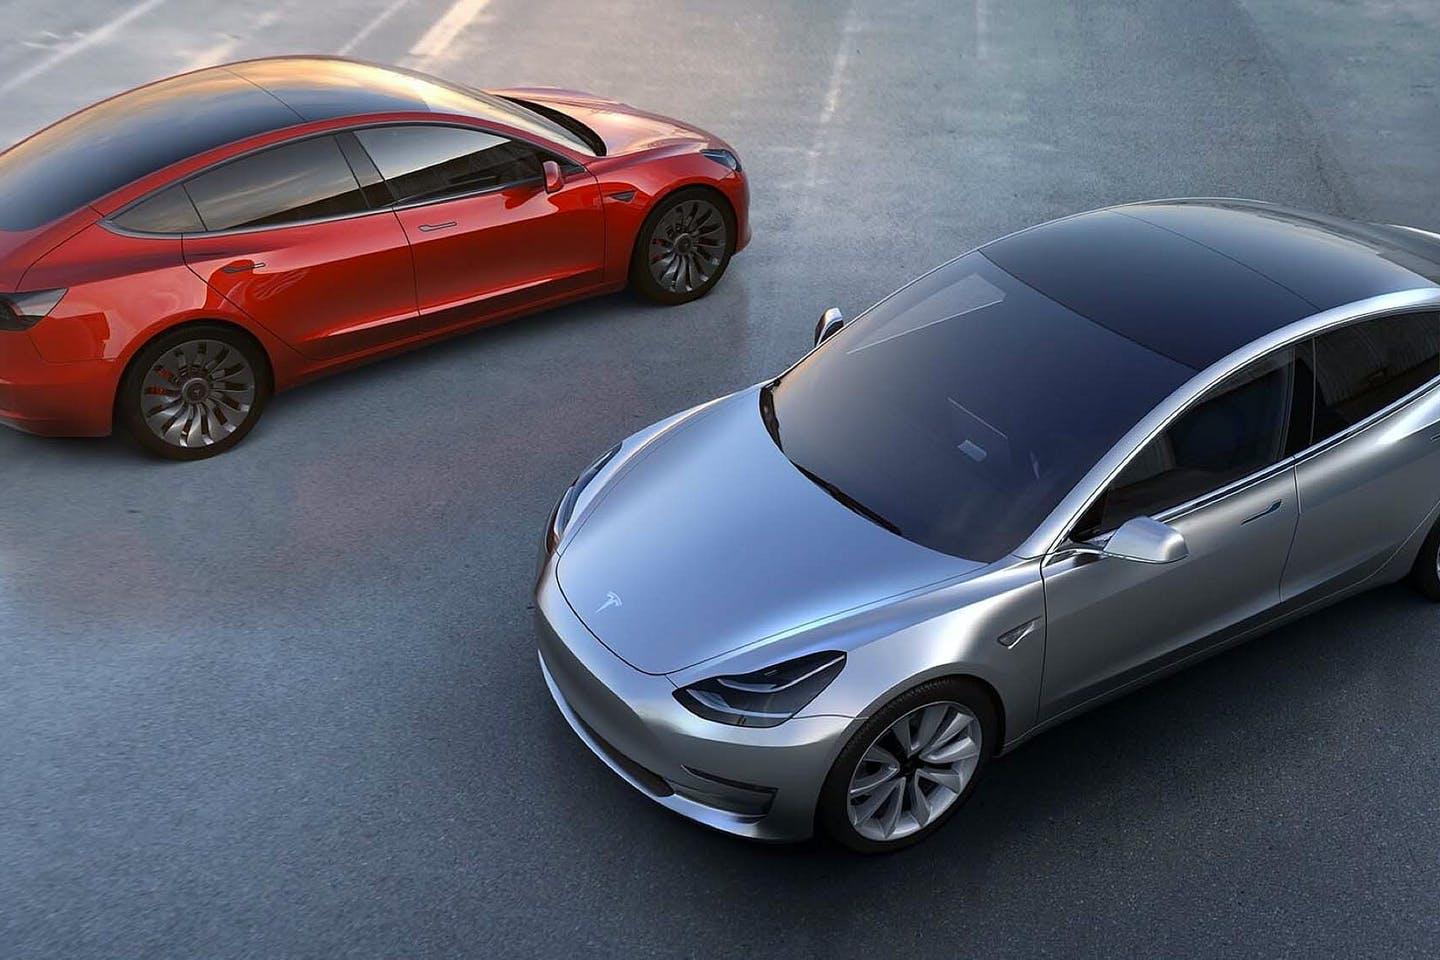 Tesla 3 electric vehicles